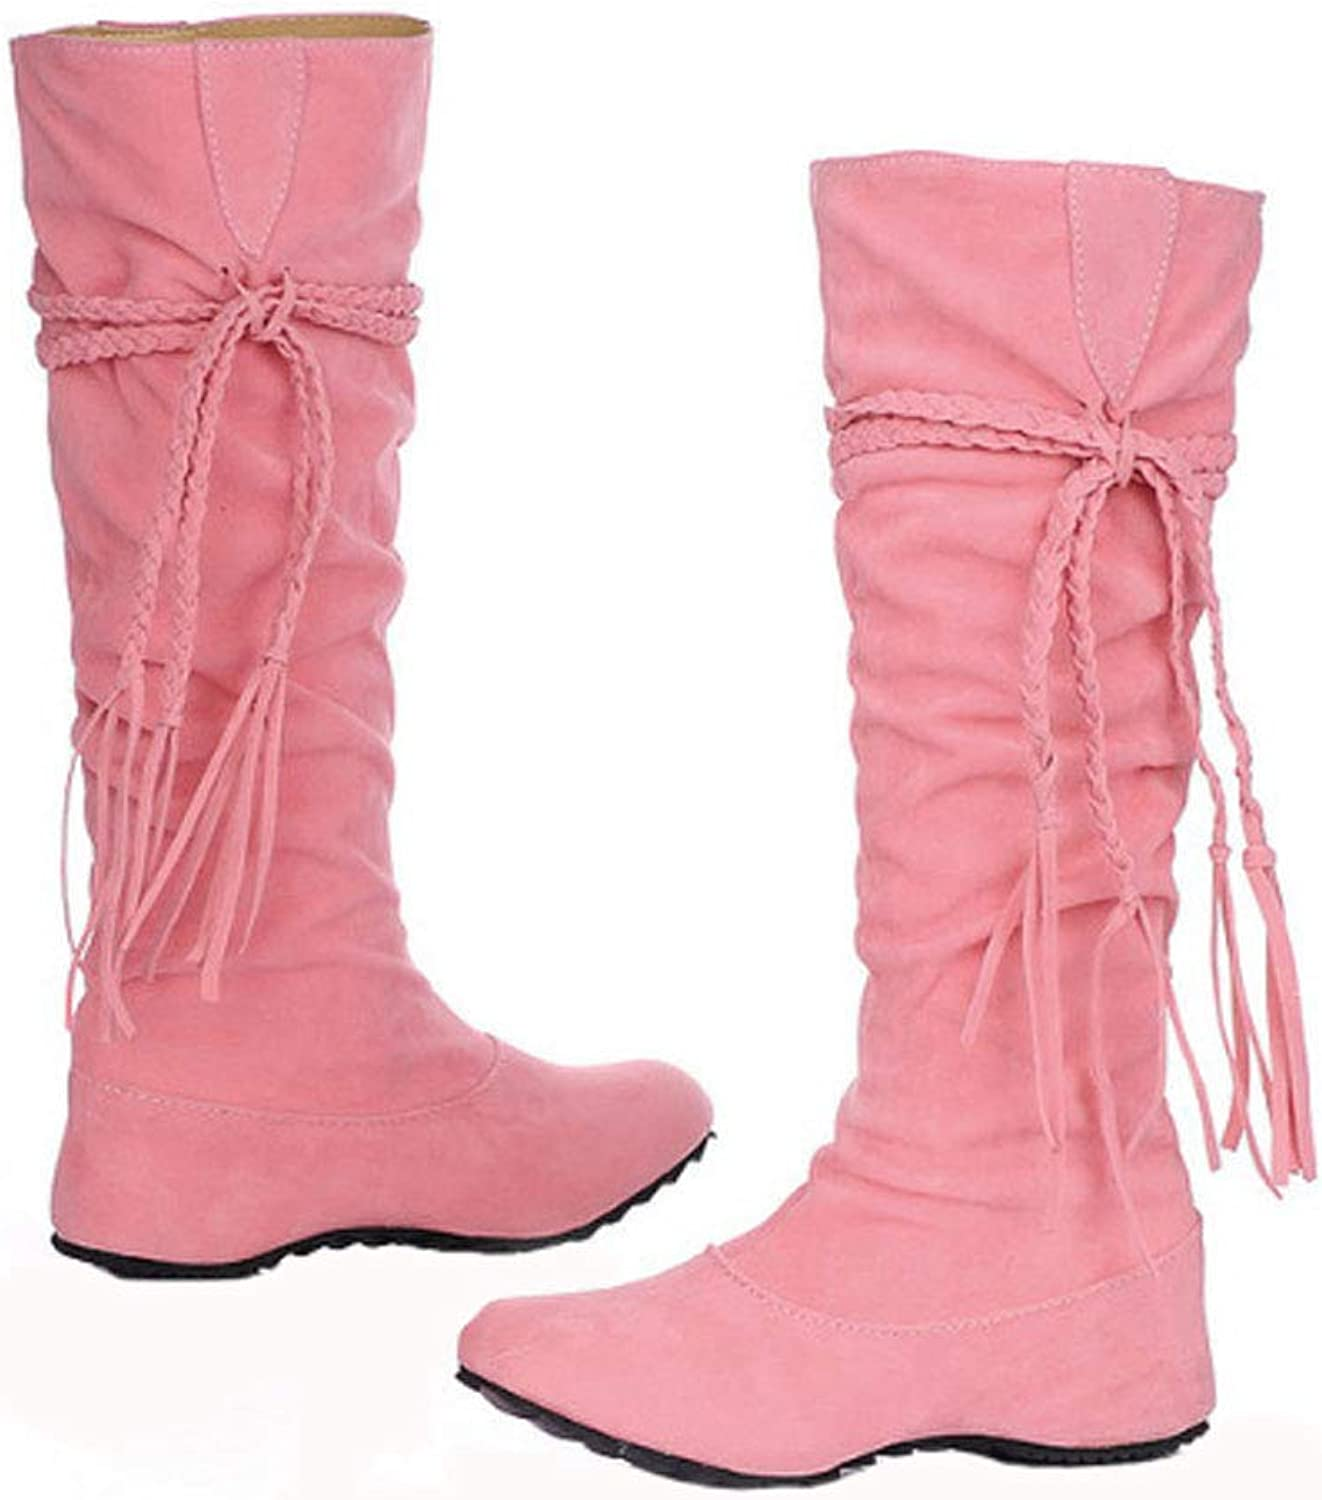 Women's Boots, Large Size Women's shoes PU Fabric High Boots Plush Lining Non-Slip Soles Winter Warm Women's Boots, Comfortable Casual shoes,Pink,43